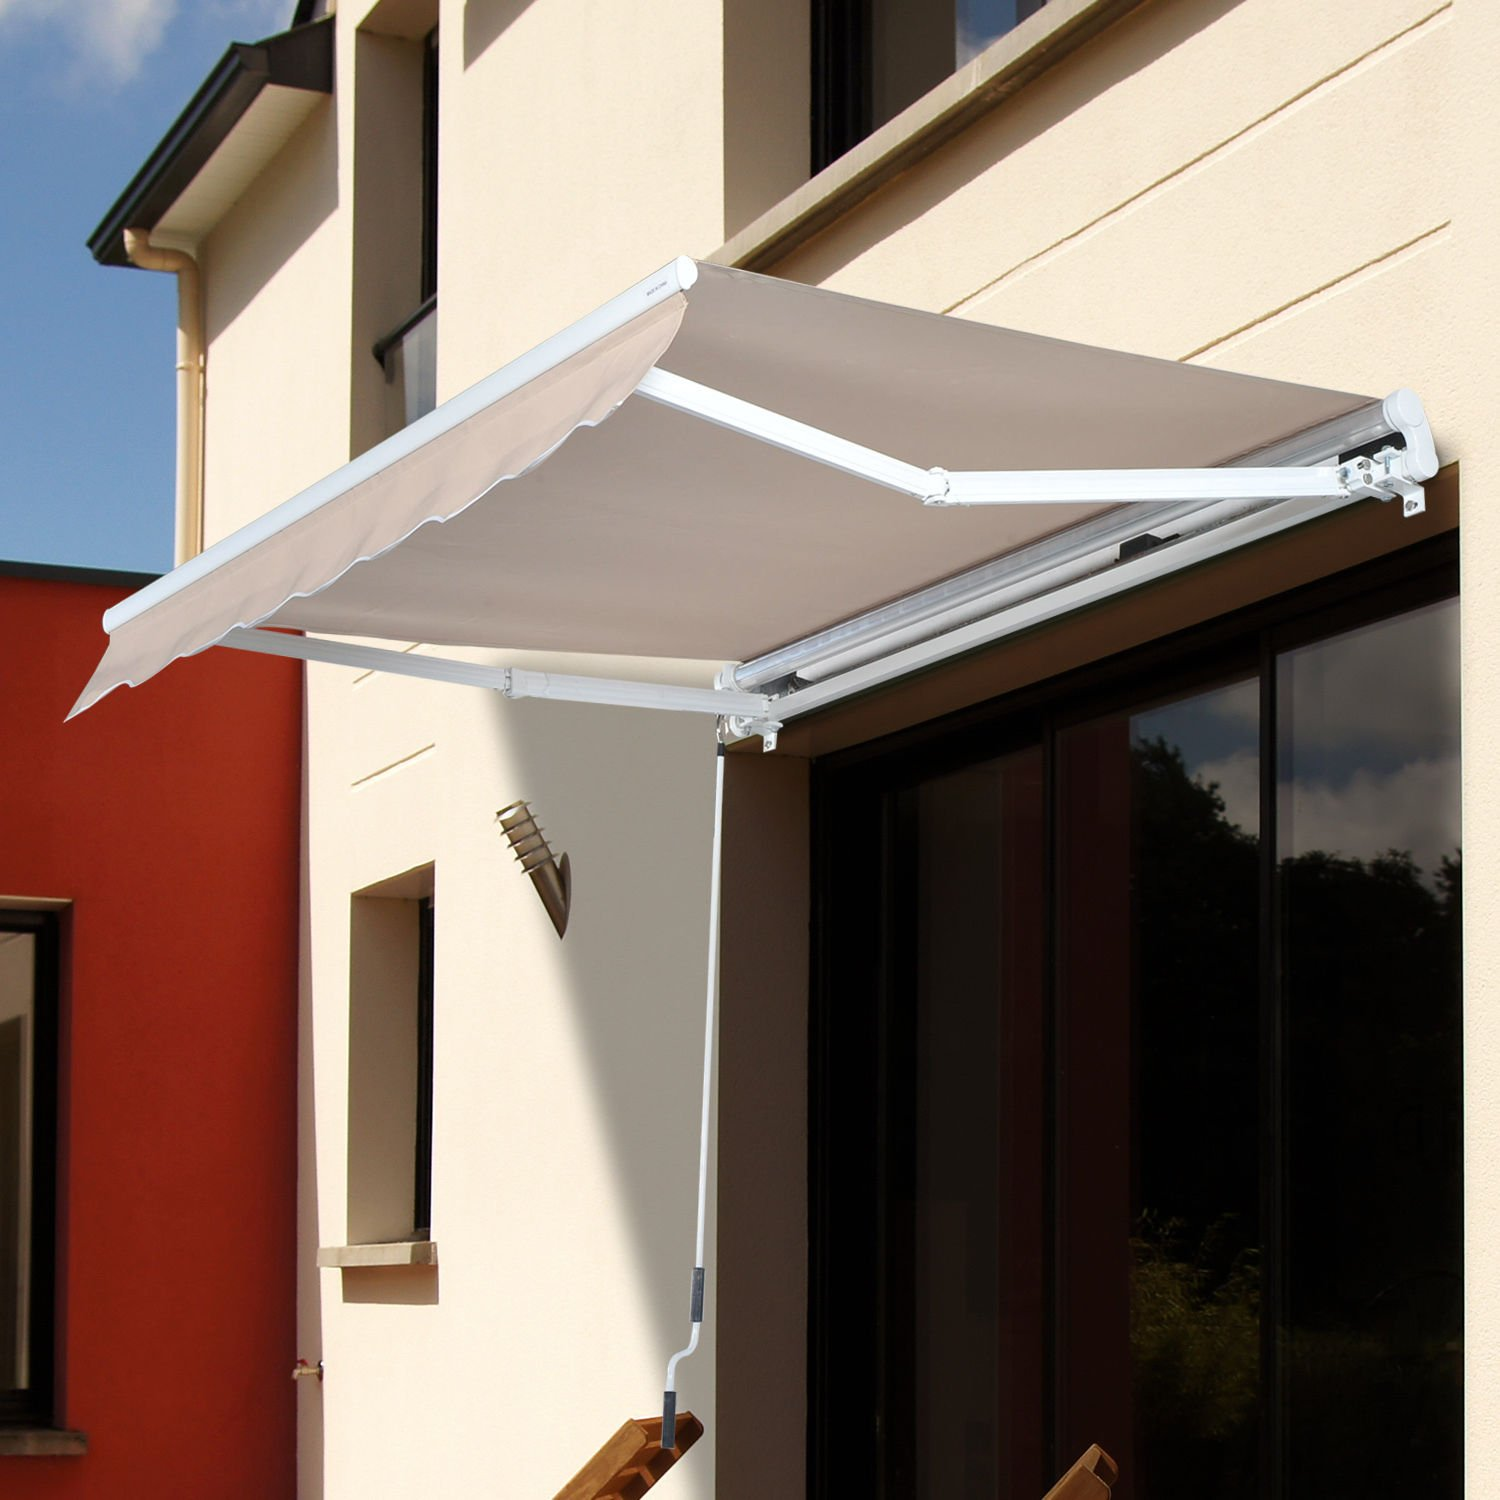 Outsunny 8' x 7' Patio Manual Retractable Sun Shade Awning - Cream by Outsunny (Image #2)